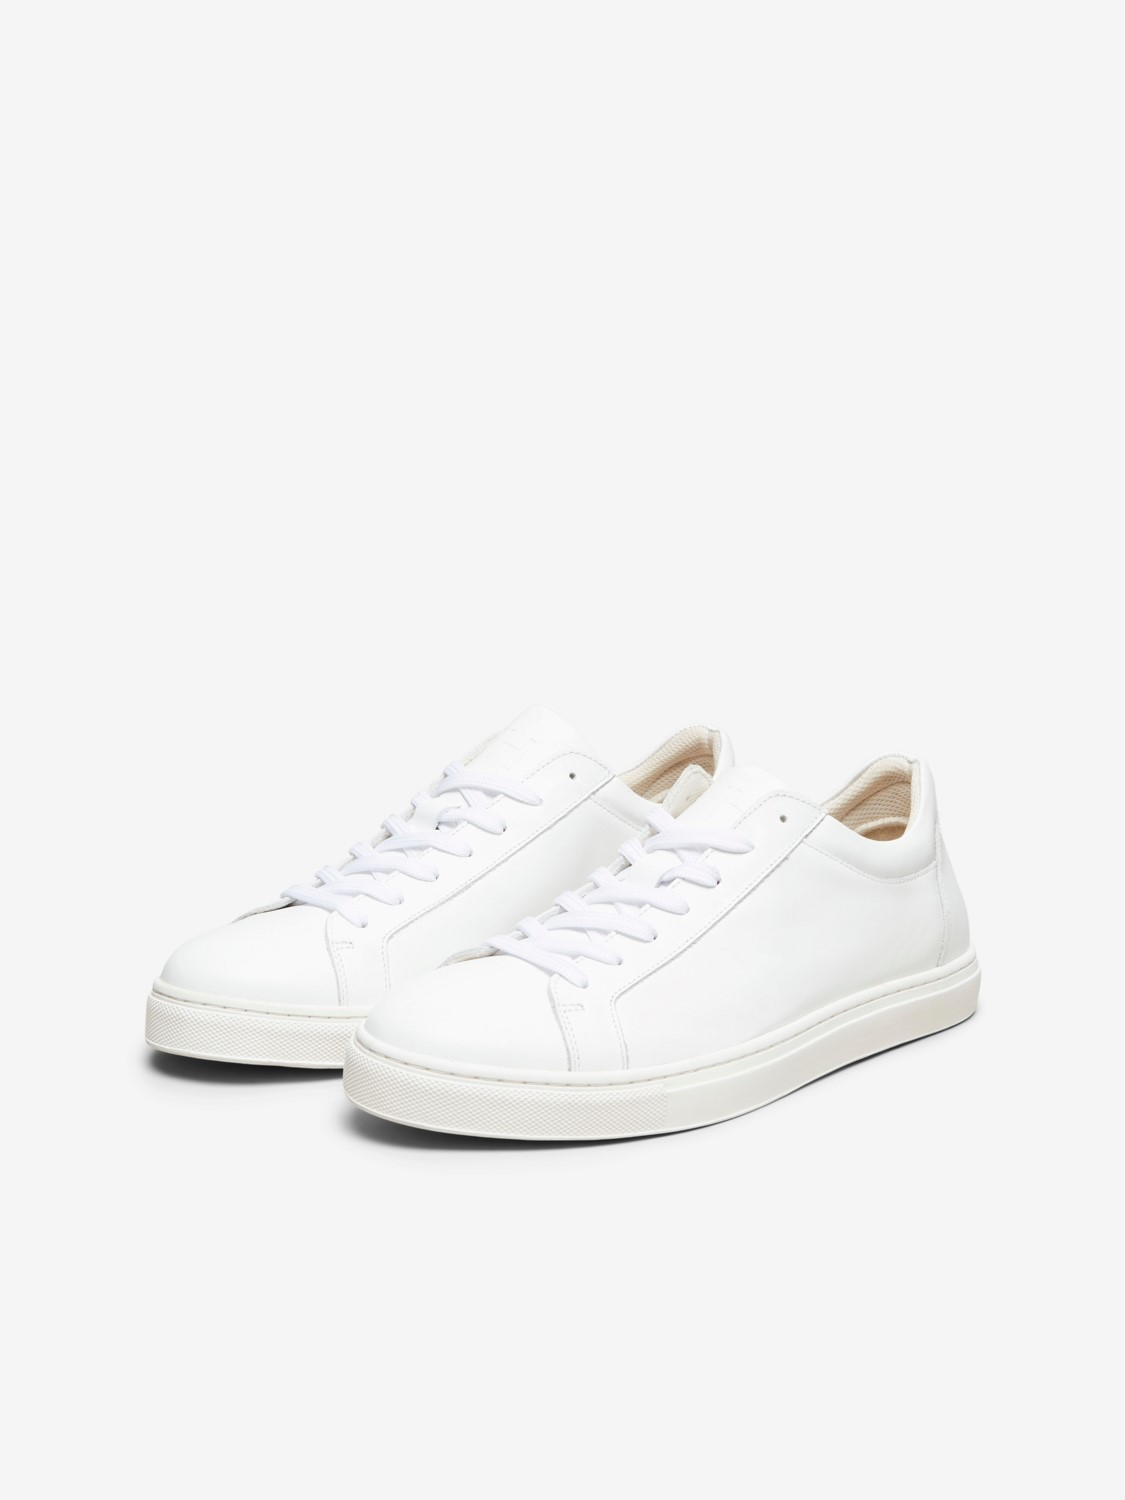 Selected - SLHEVAN LEATHER TRAINER WHITE | Gate36 Hobro